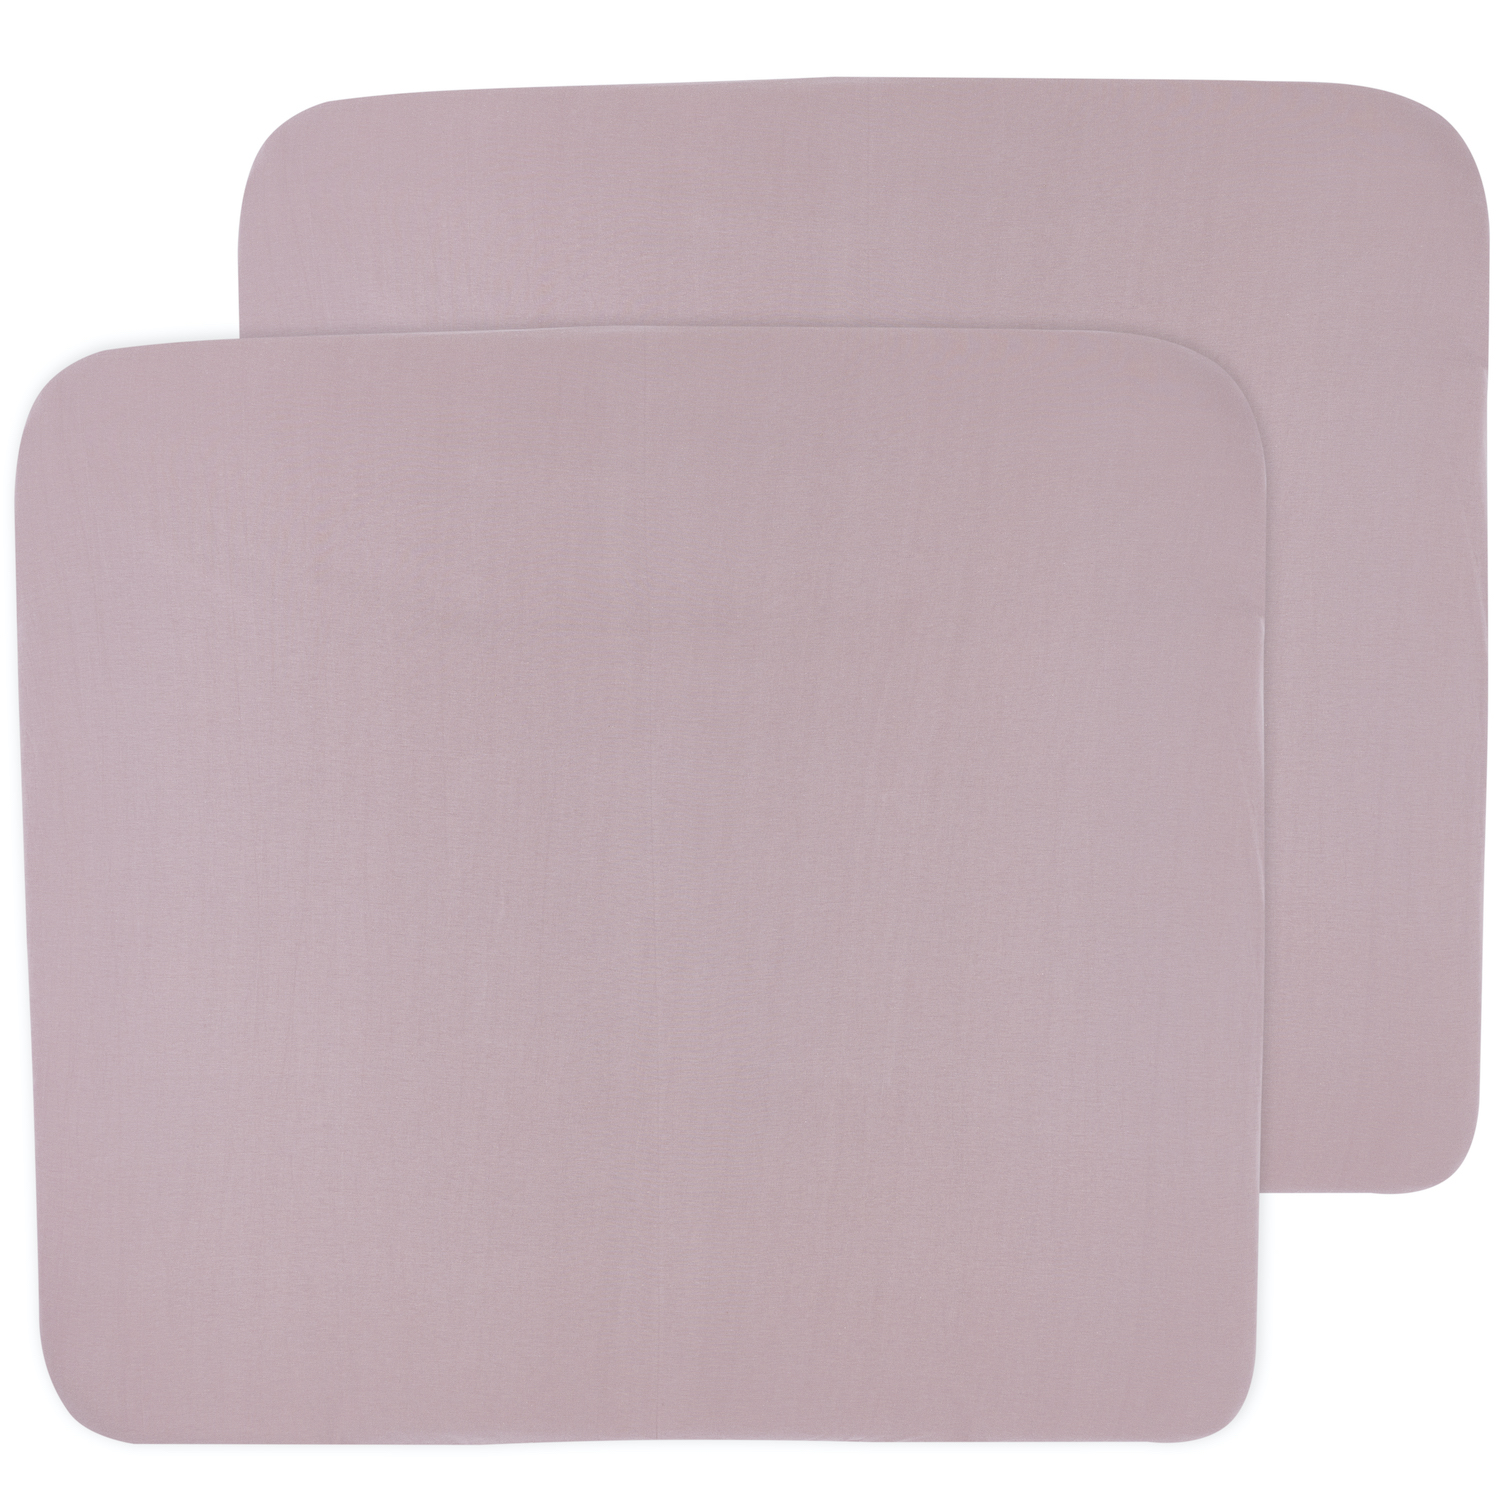 Aankleedkussenhoes 3K 2-pack Basic Jersey - Lilac - 85x75cm